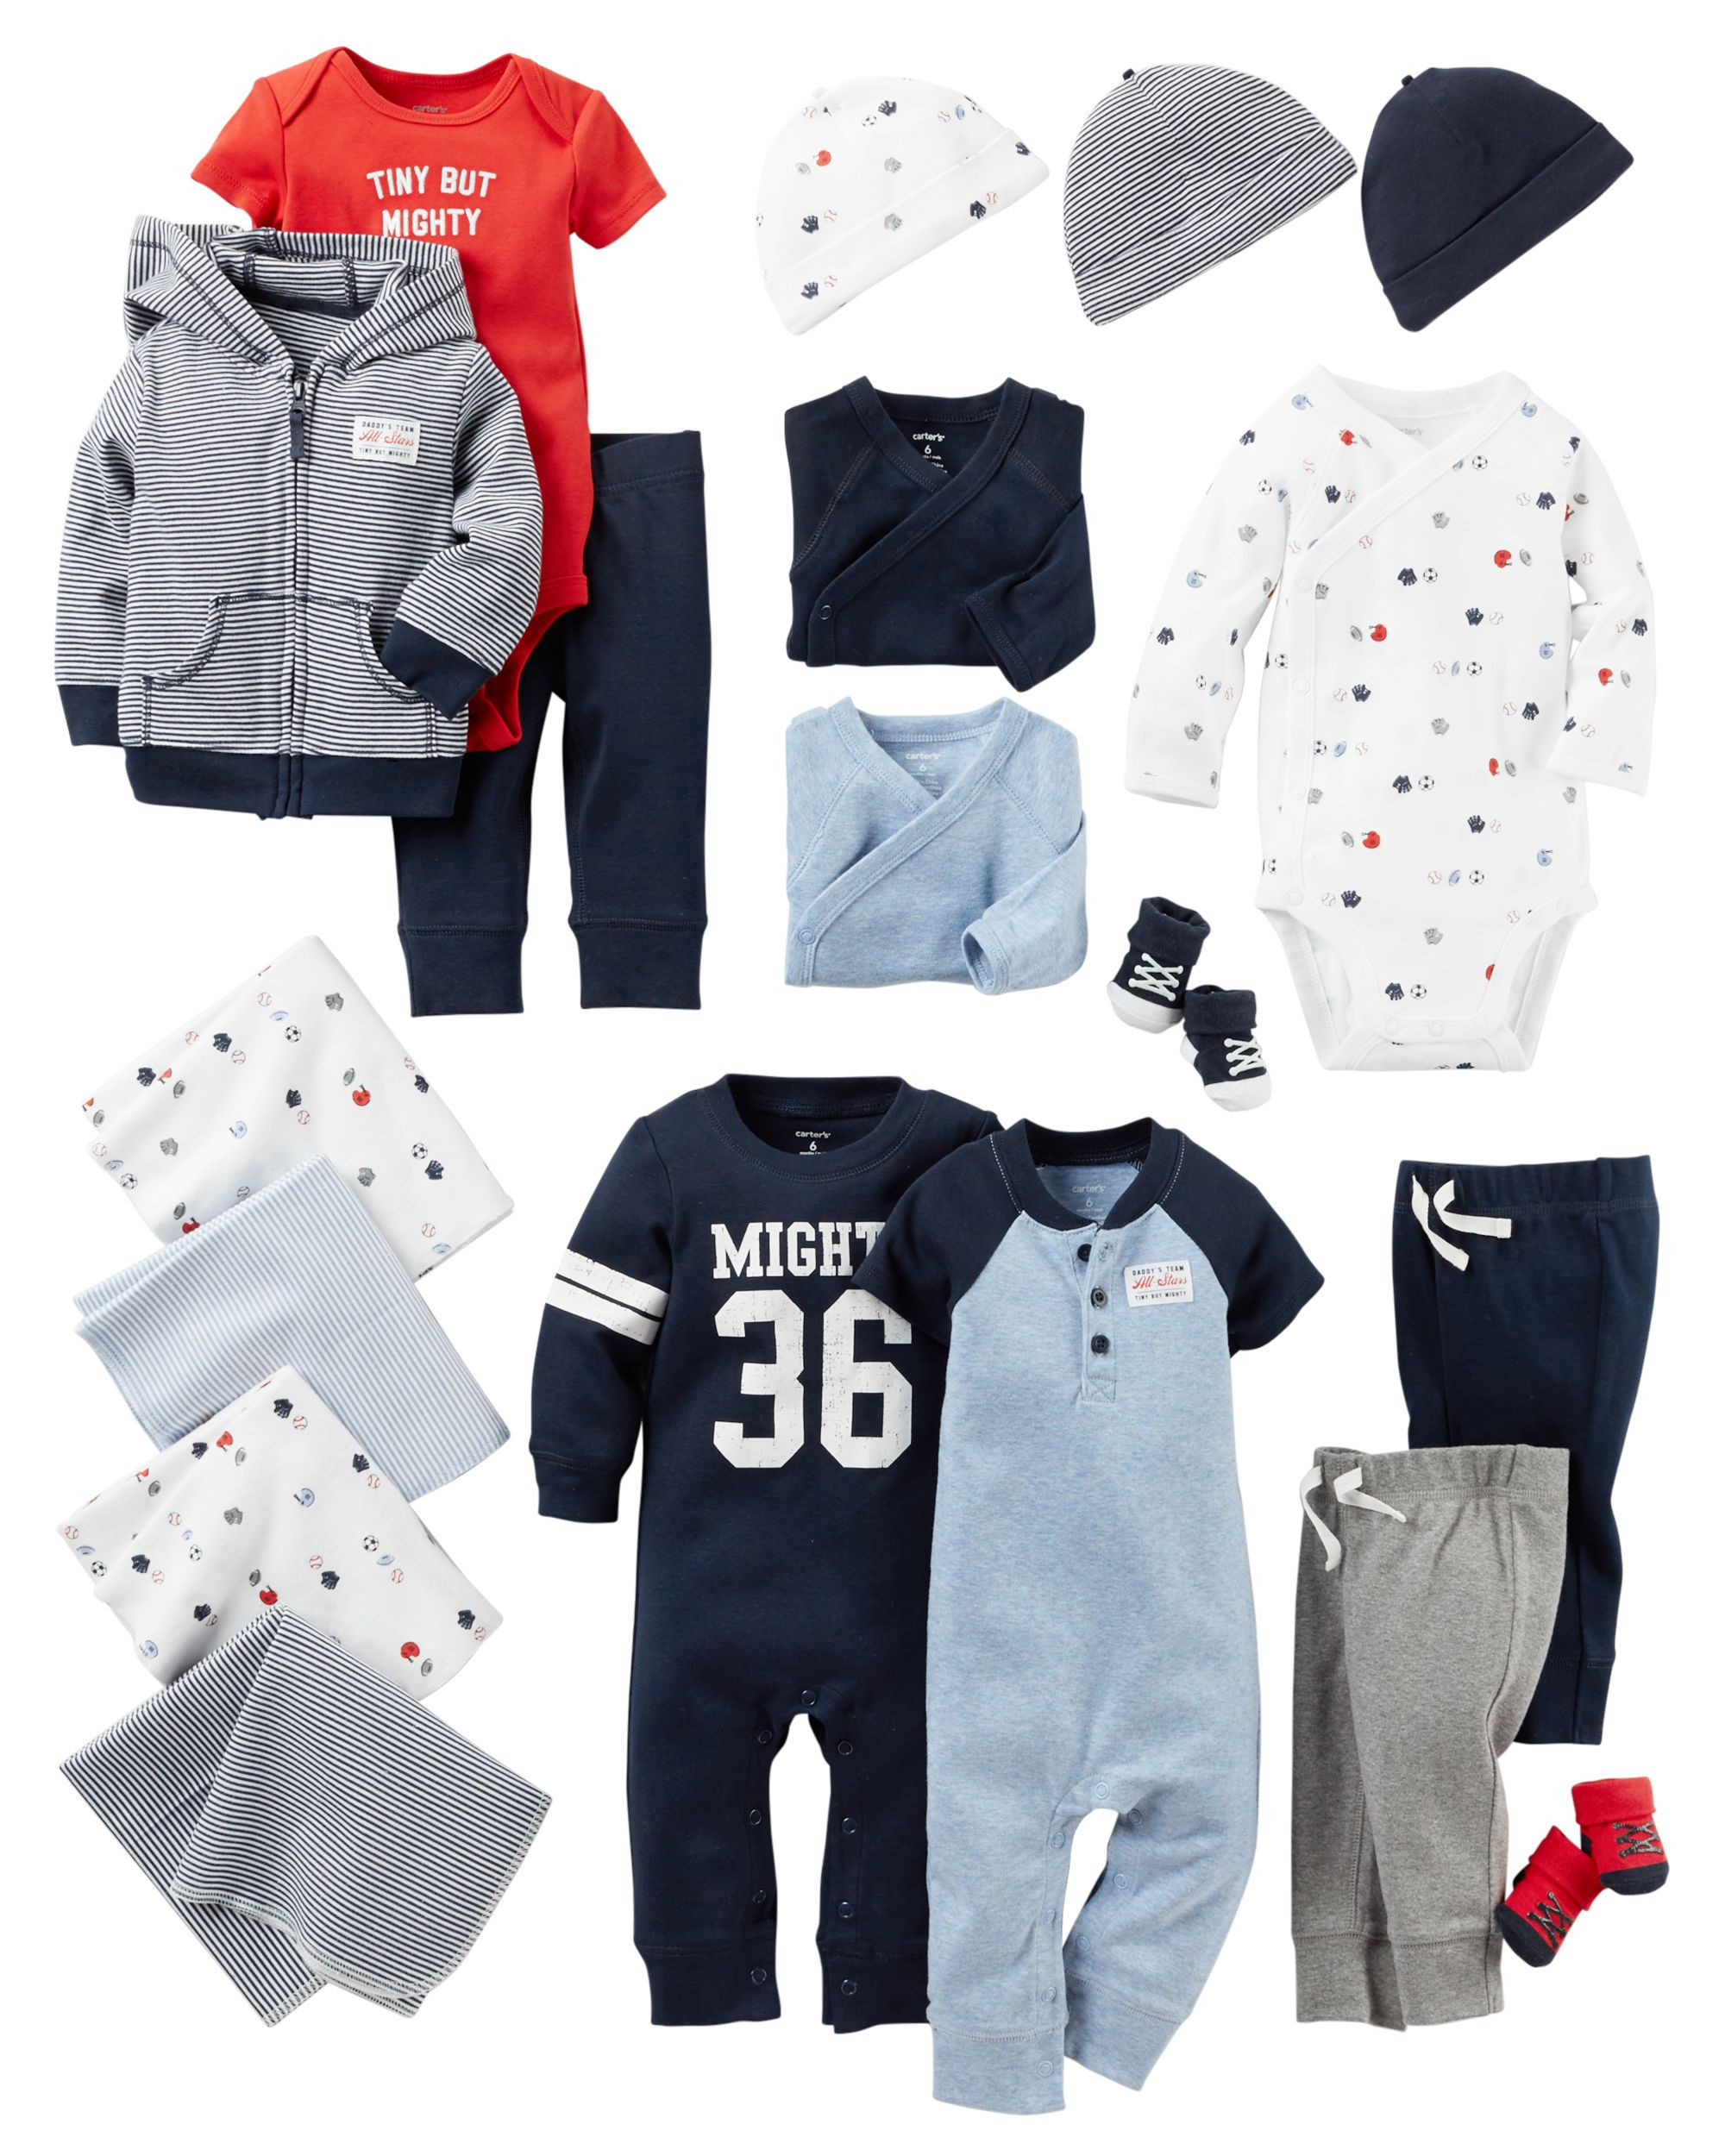 Cute English Bulldog Sleepwear Tbjrk09-9 Short Sleeve Cotton Rompers for Baby Boys and Girls